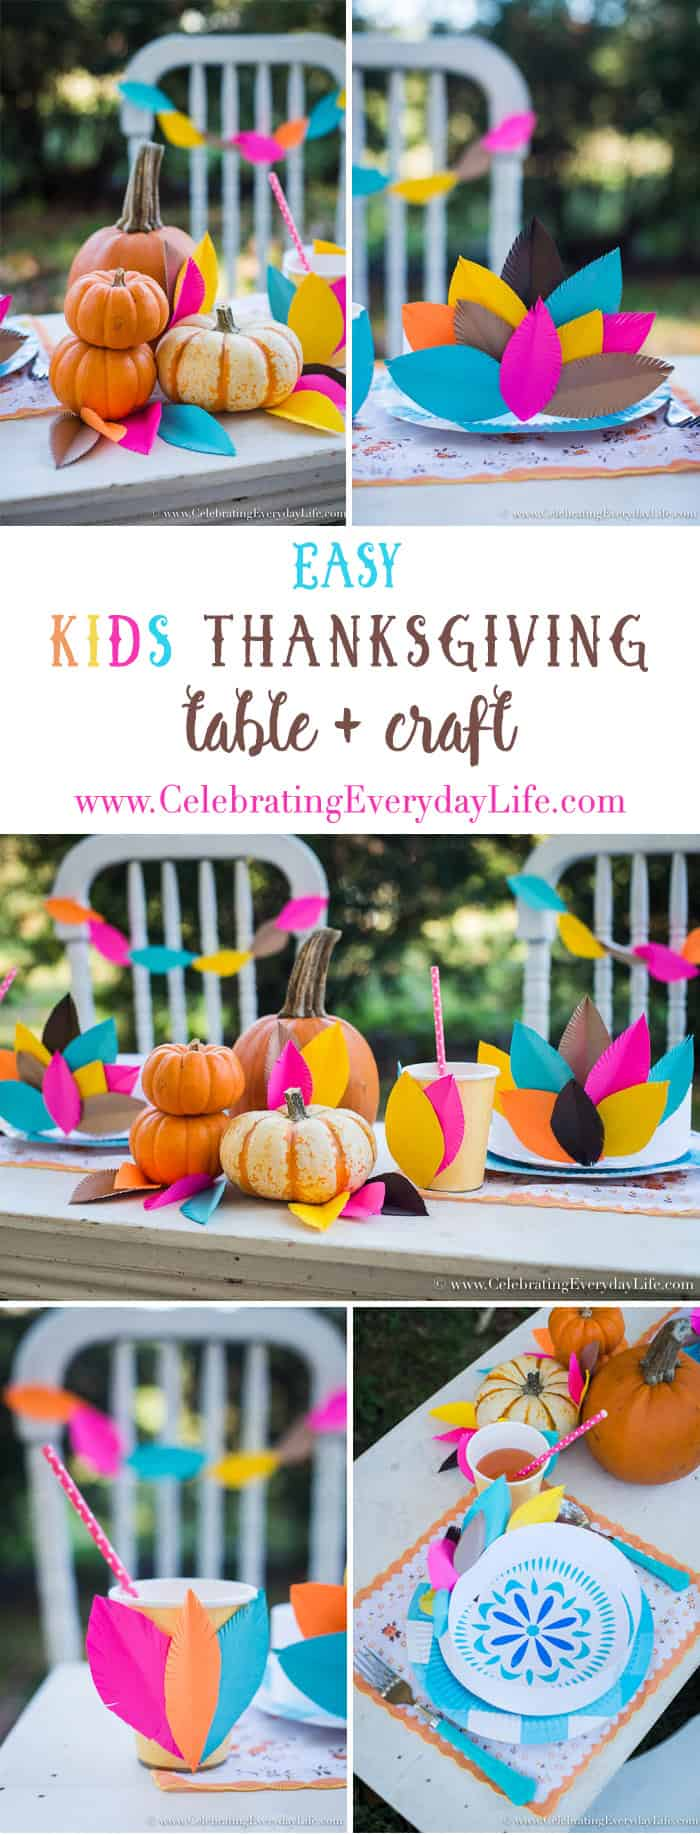 easy kids thanksgiving table, kids thanksgiving table, kids thanksgiving crafts, kids feather headress, kids paper crafts, kids paper feathers, thanksgiving paper decorations, paper feather garland, paper feather decoration, Celebrating Everyday Life with Jennifer Carroll